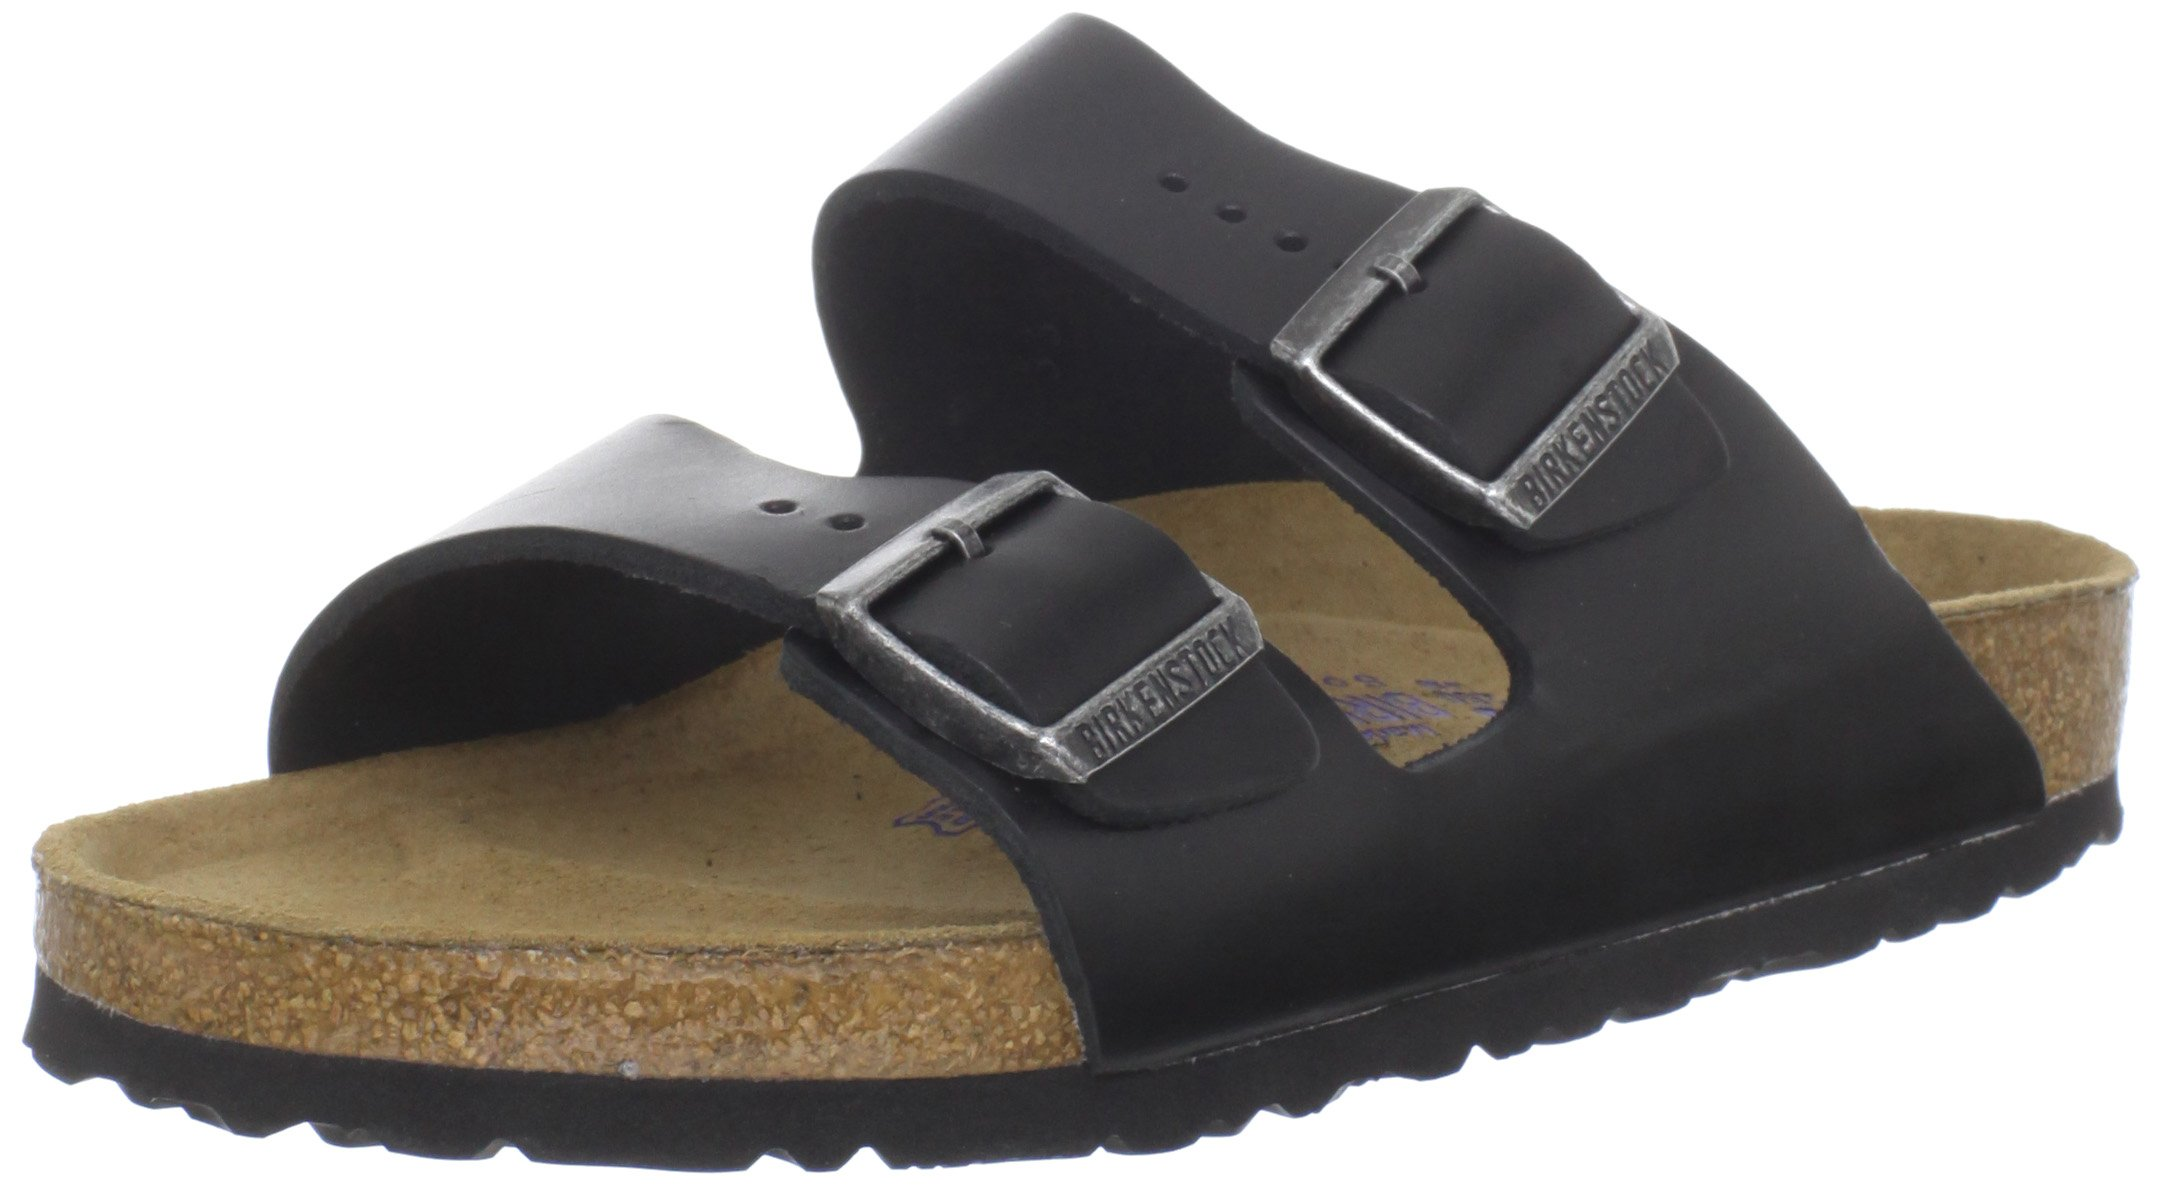 Birkenstock Unisex Arizona Soft Footbed Sandal, Black Amalfi Leather, 37 M EU/6-6.5 B(M) US Women